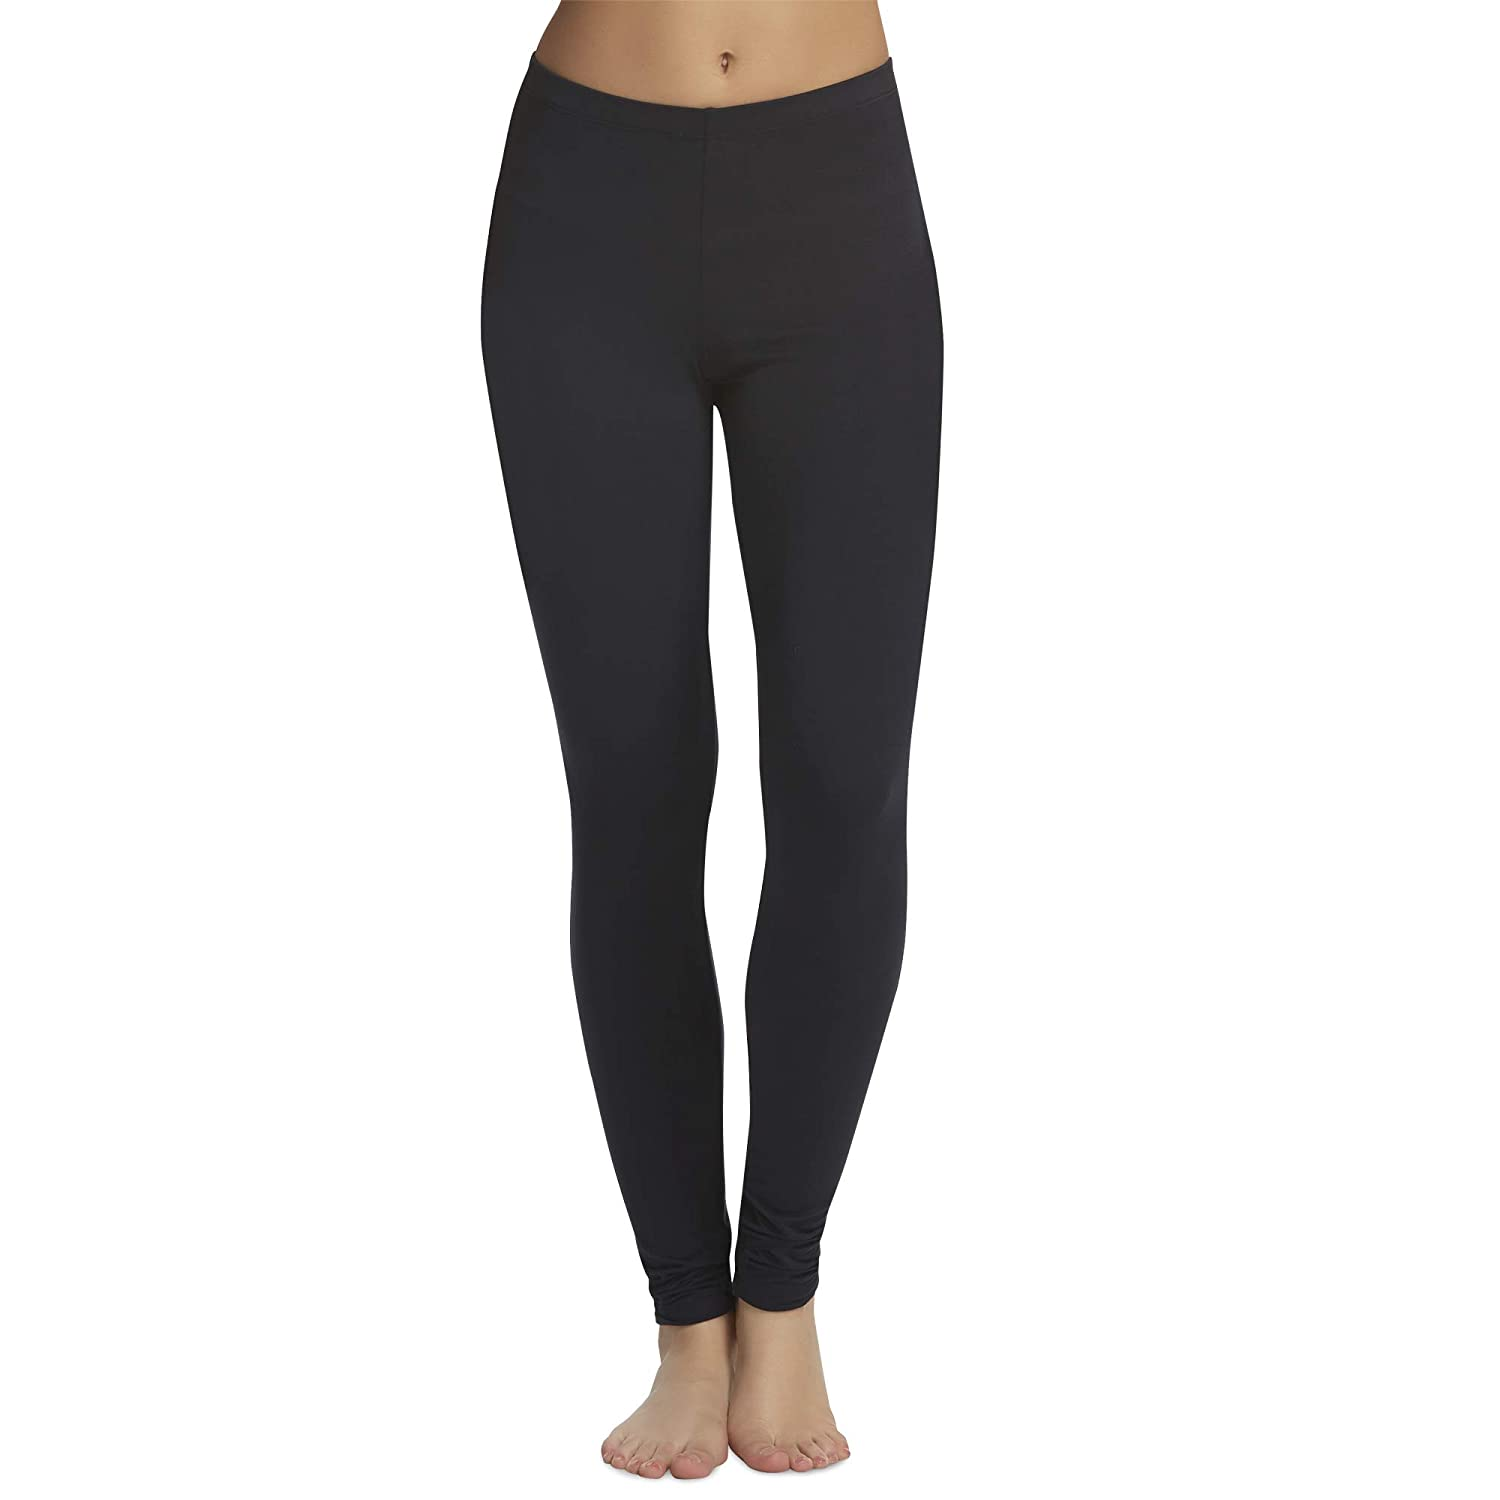 Legging Velvety Super Soft LightWeight By Felina Black 2 Pack New Arrival